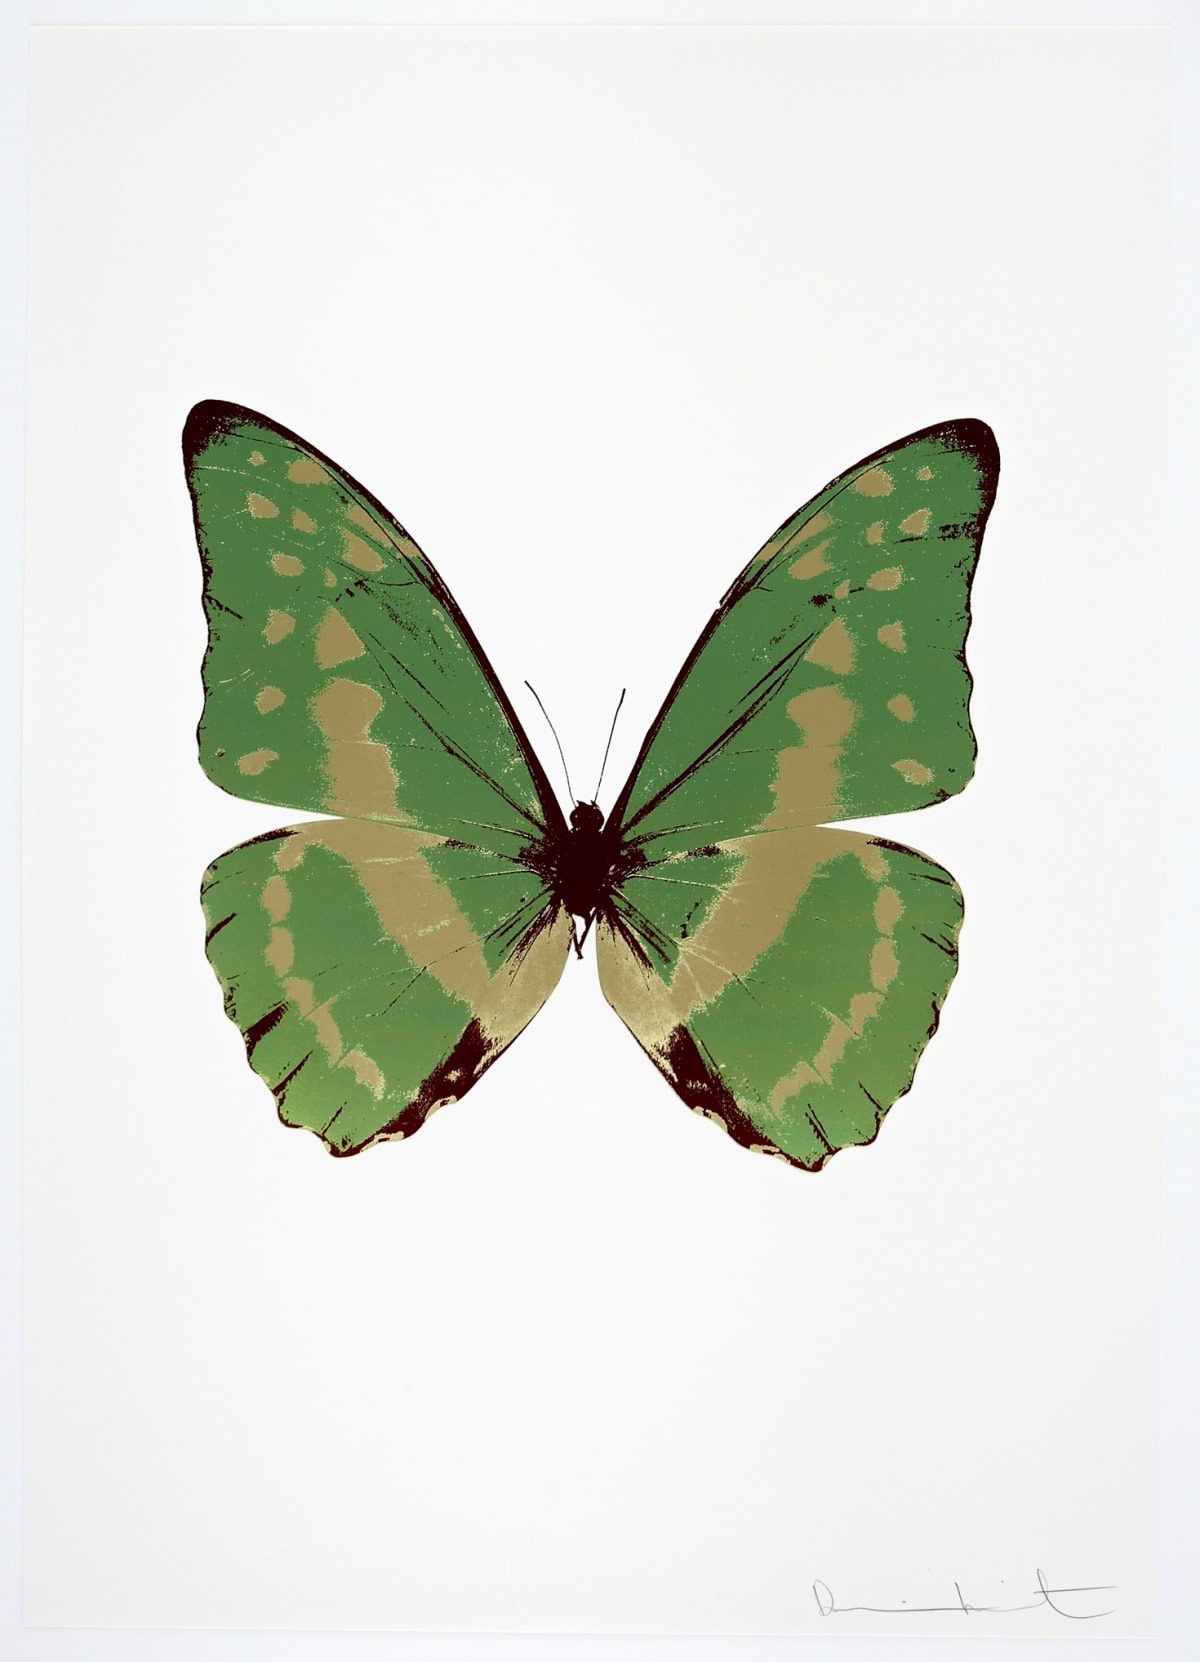 Damien Hirst The Souls III - Leaf Green/Cool Gold/Burgundy, 2010 3 colour foil block on 300gsm Arches 88 archival paper. Signed and numbered. Published by Paul Stolper and Other Criteria 72 x 51cm OC7943 / 660-46 Edition of 15